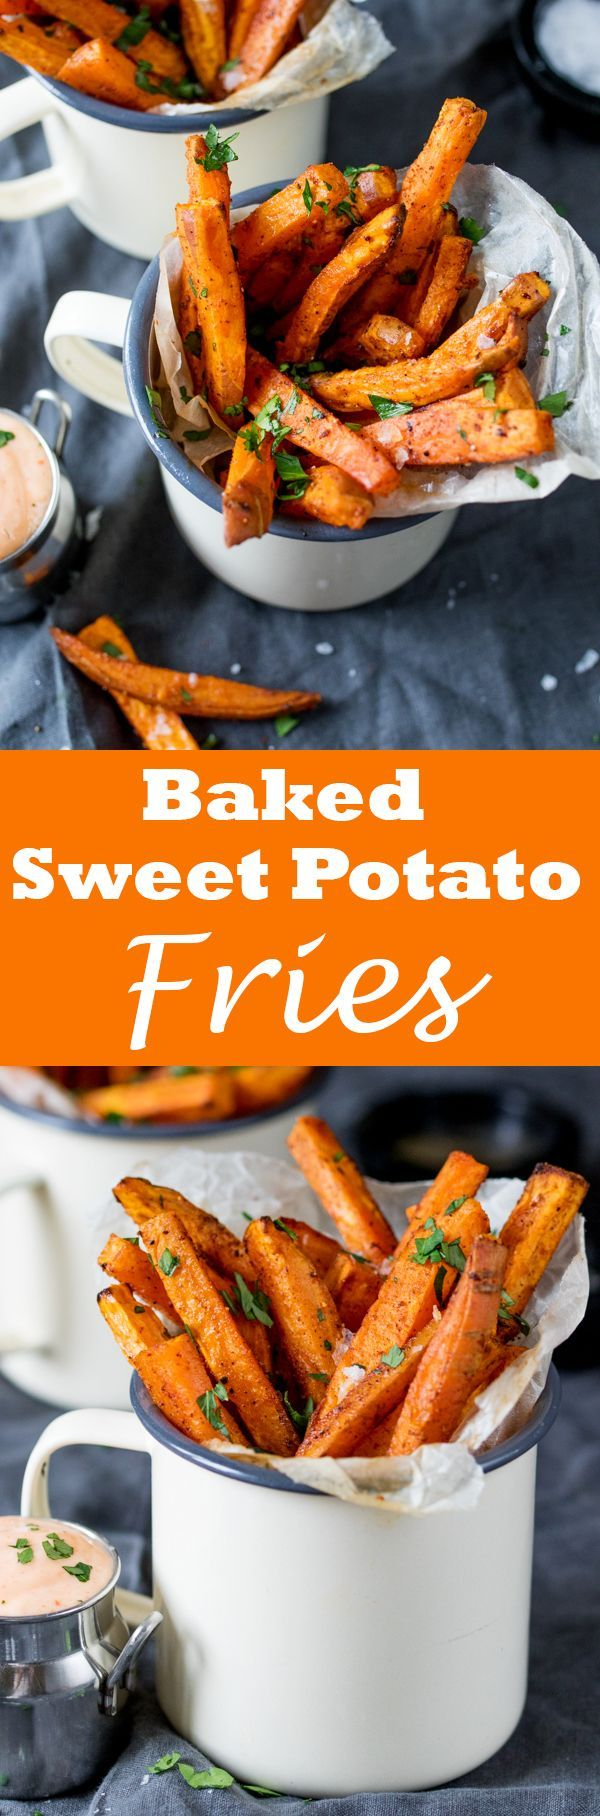 Baked sweet potato fries - a simple and healthy snack, side dish or appetizer!